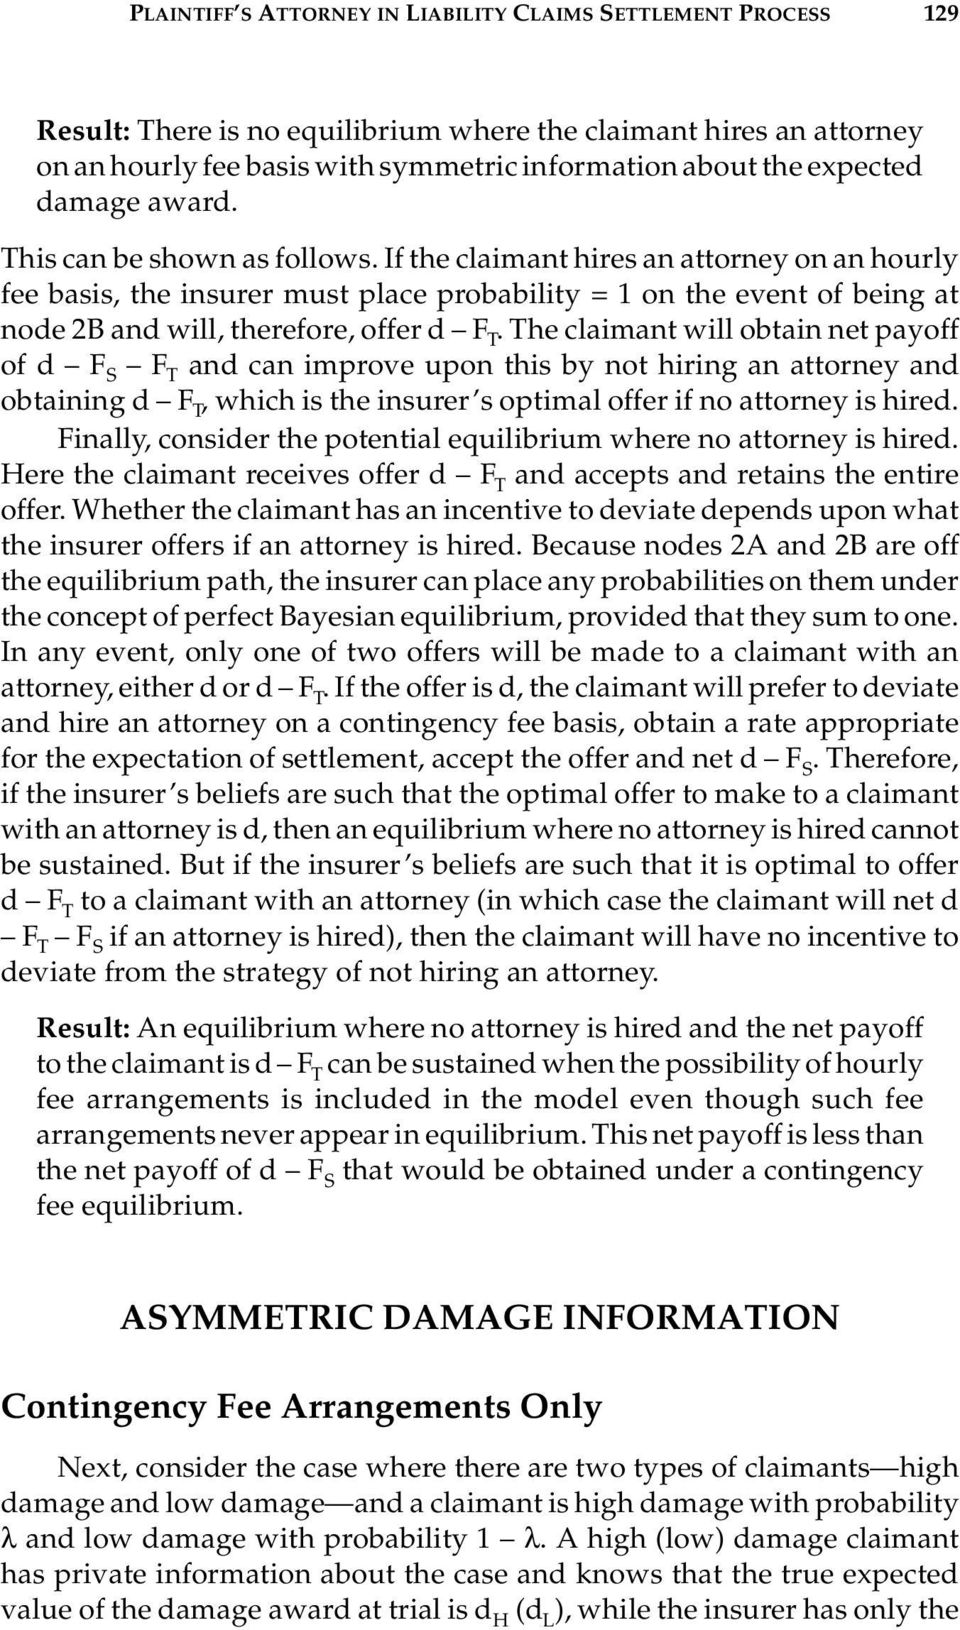 If the claimant hires an attorney on an hourly fee basis, the insurer must place probability = 1 on the event of being at node 2B and will, therefore, offer d F T.